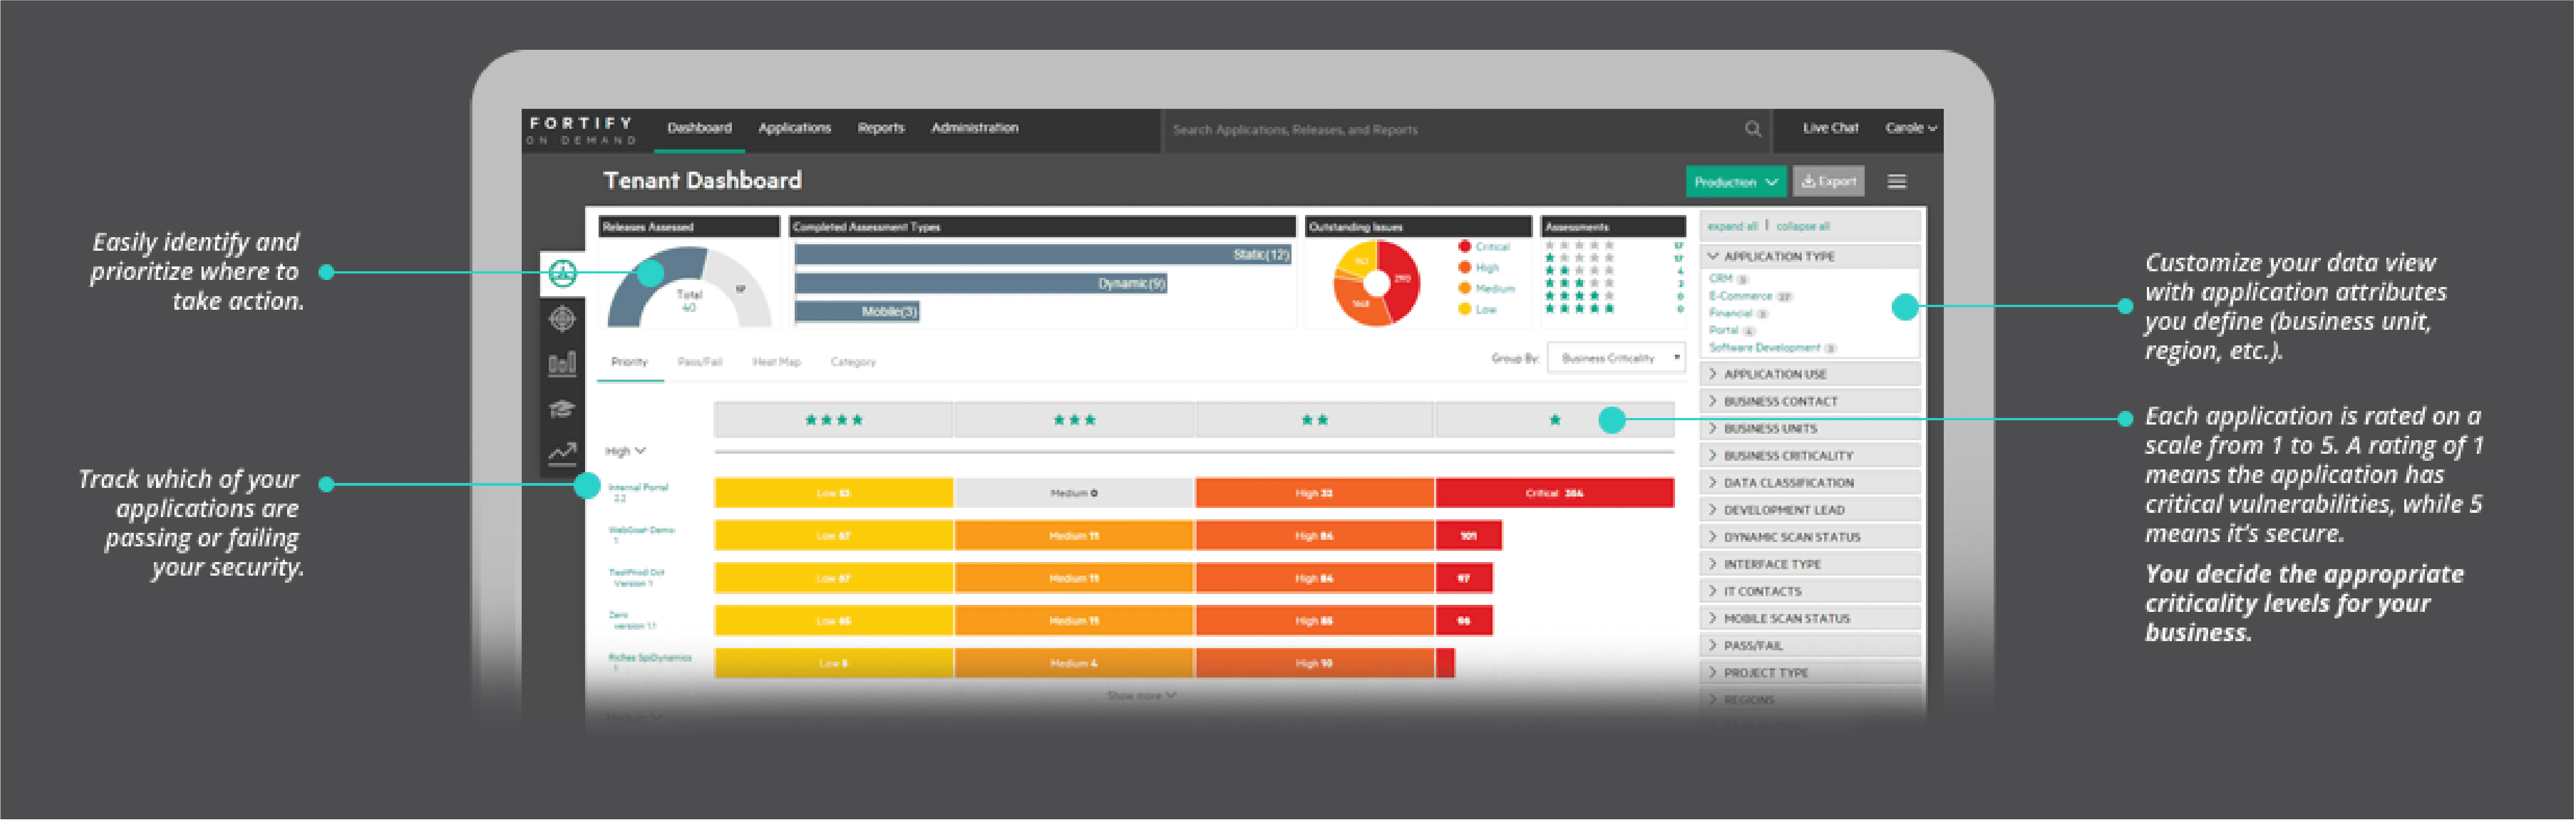 Manage your AppSec Program from a centralized portal or hosted web-based interface.